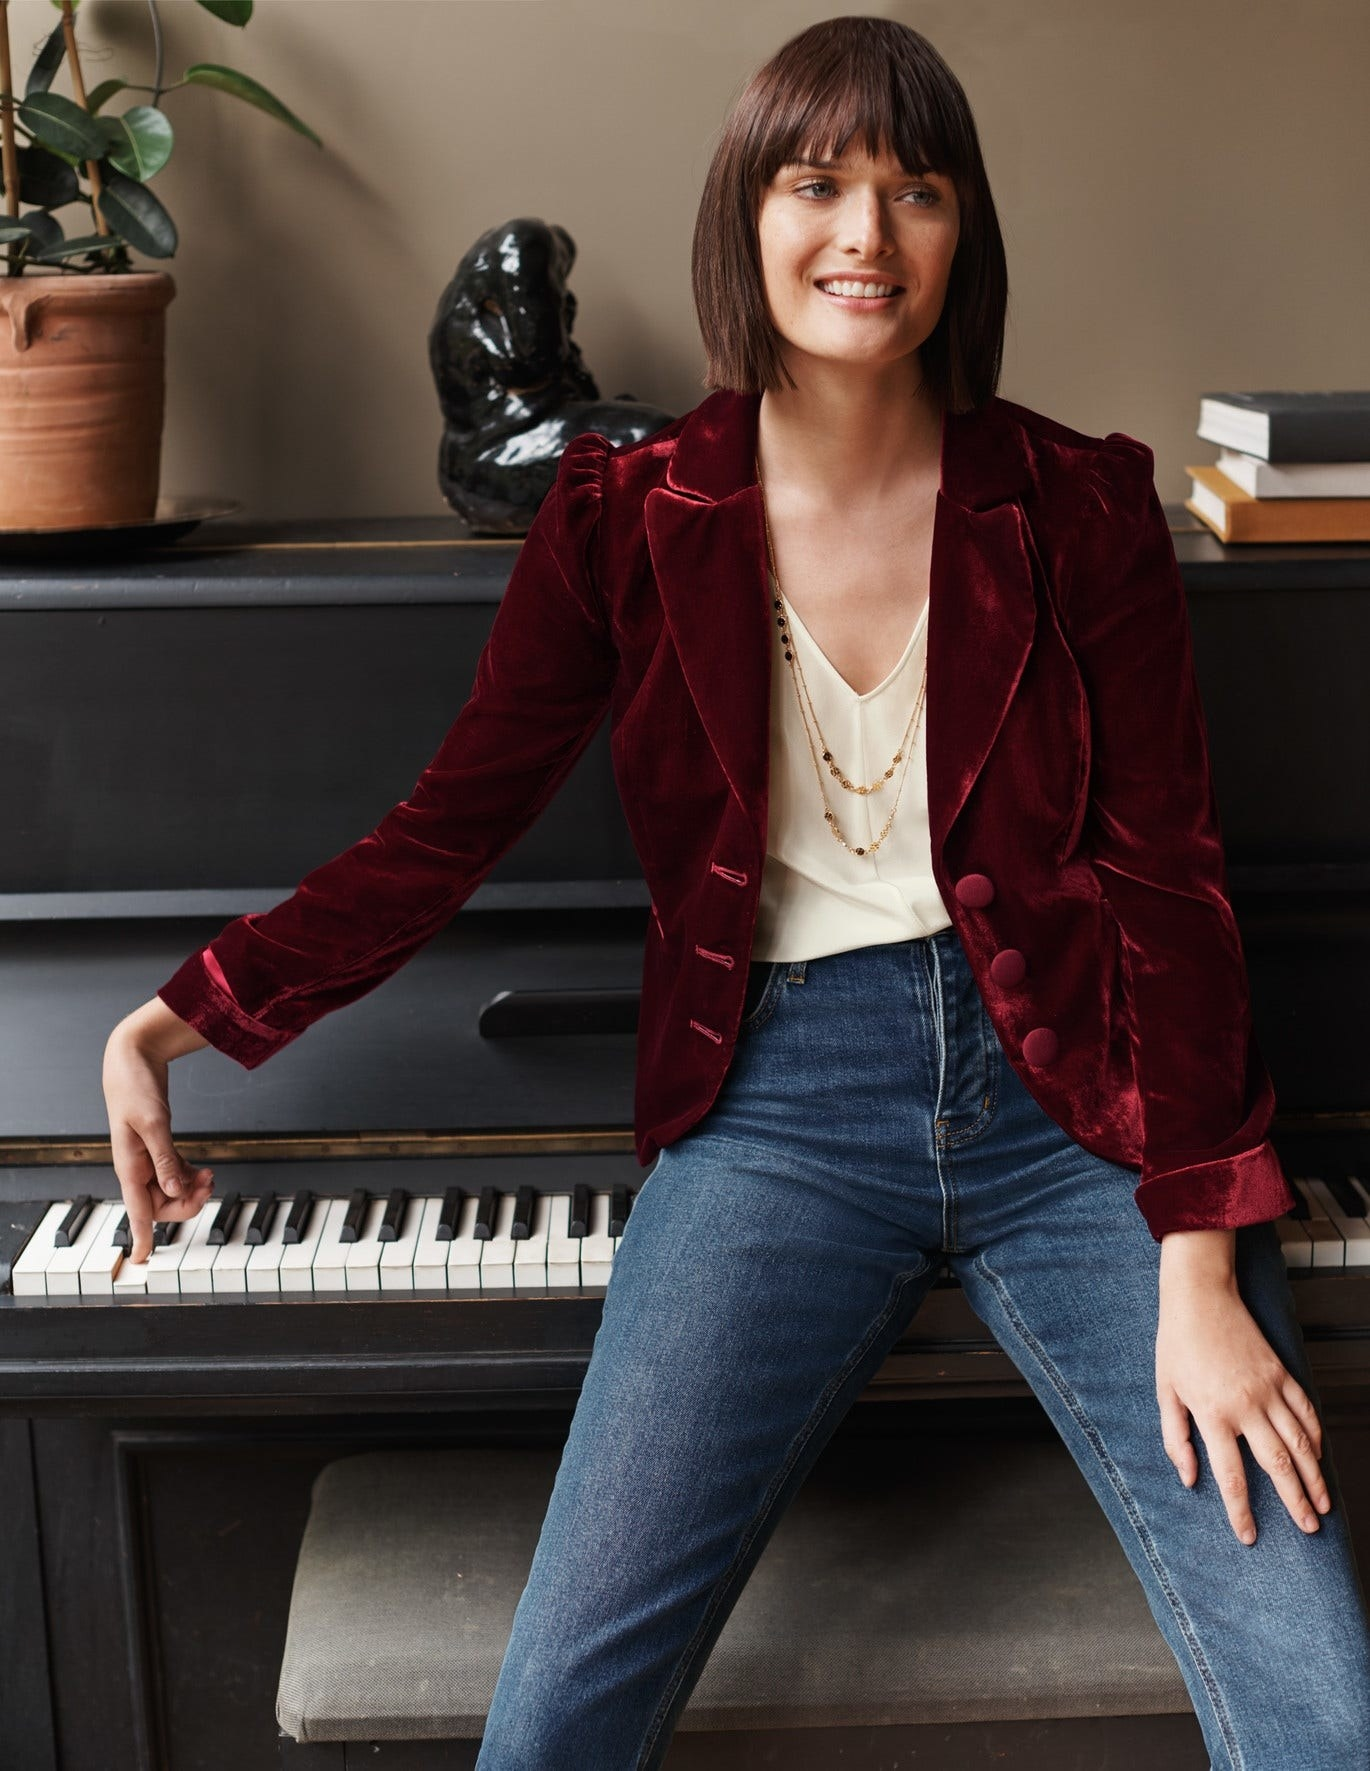 Model in a maroon velvet blazer with puff sleeves and three thick buttons